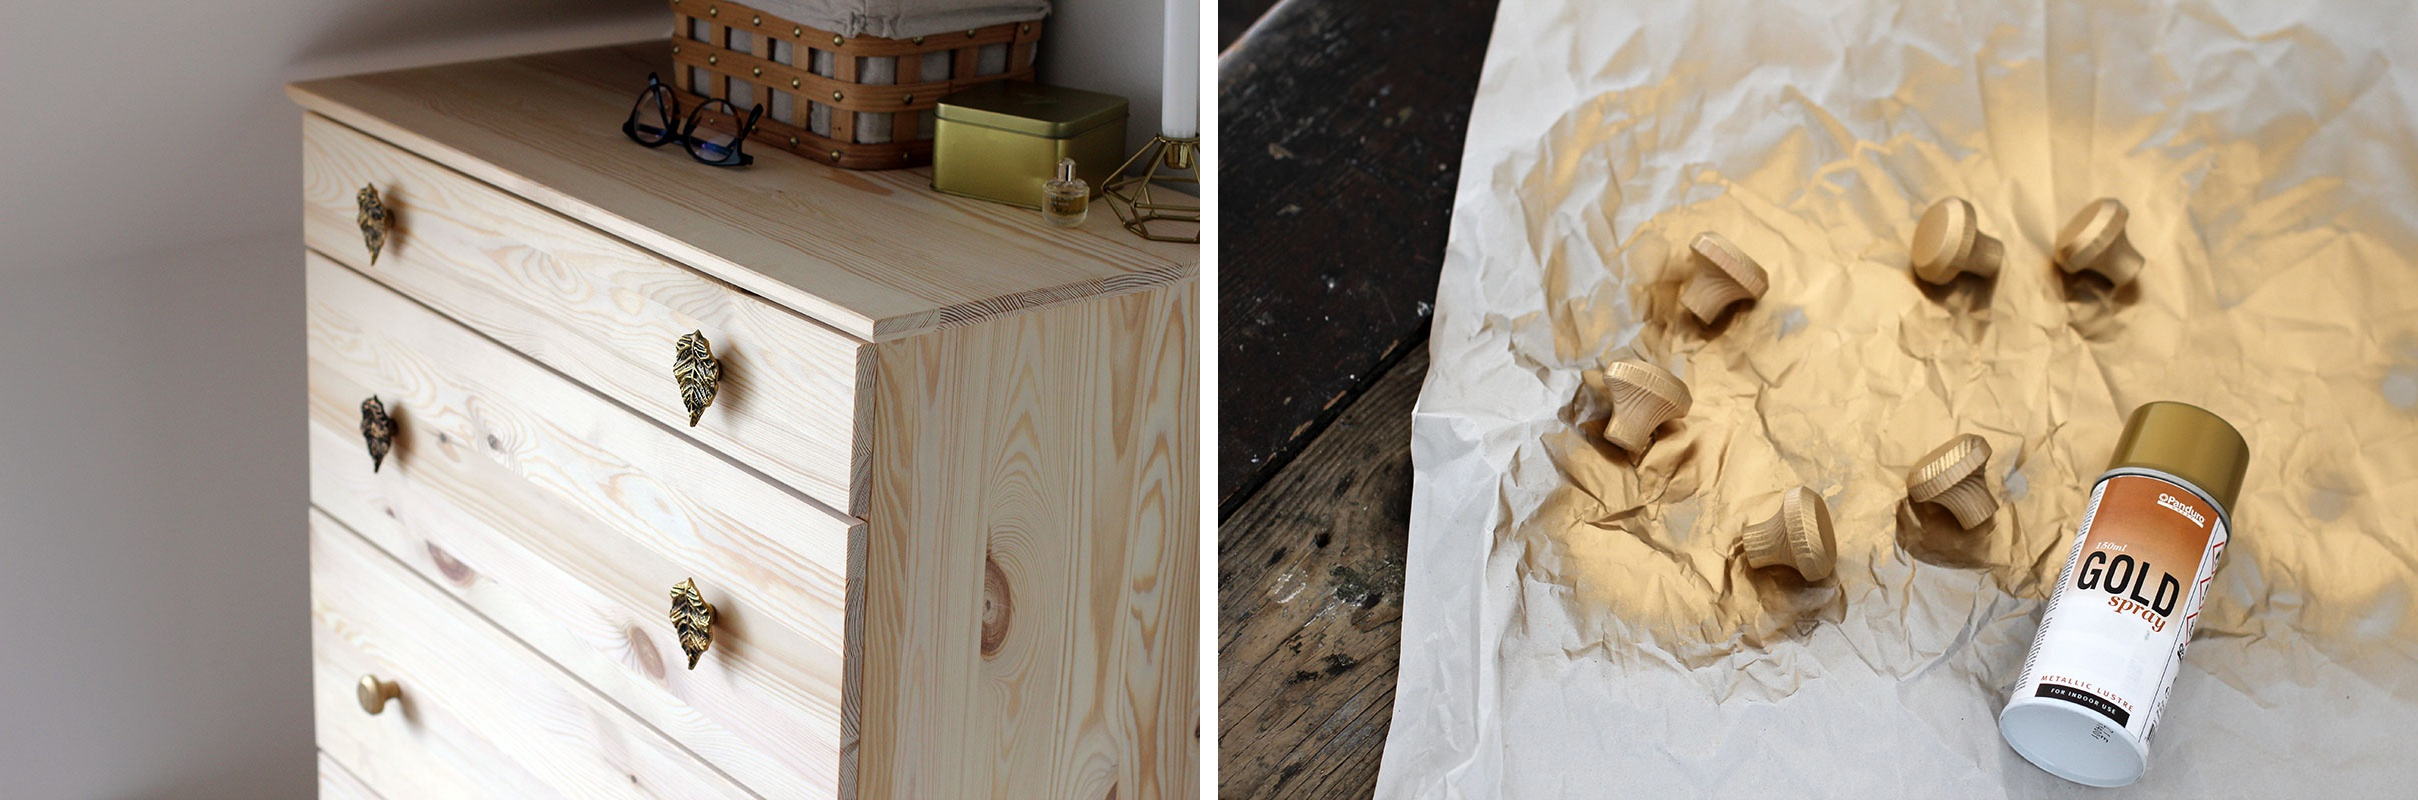 ikea tarva kommode tarva chest ikea goldspray hacjs three super easy and quick hacks you need to try out